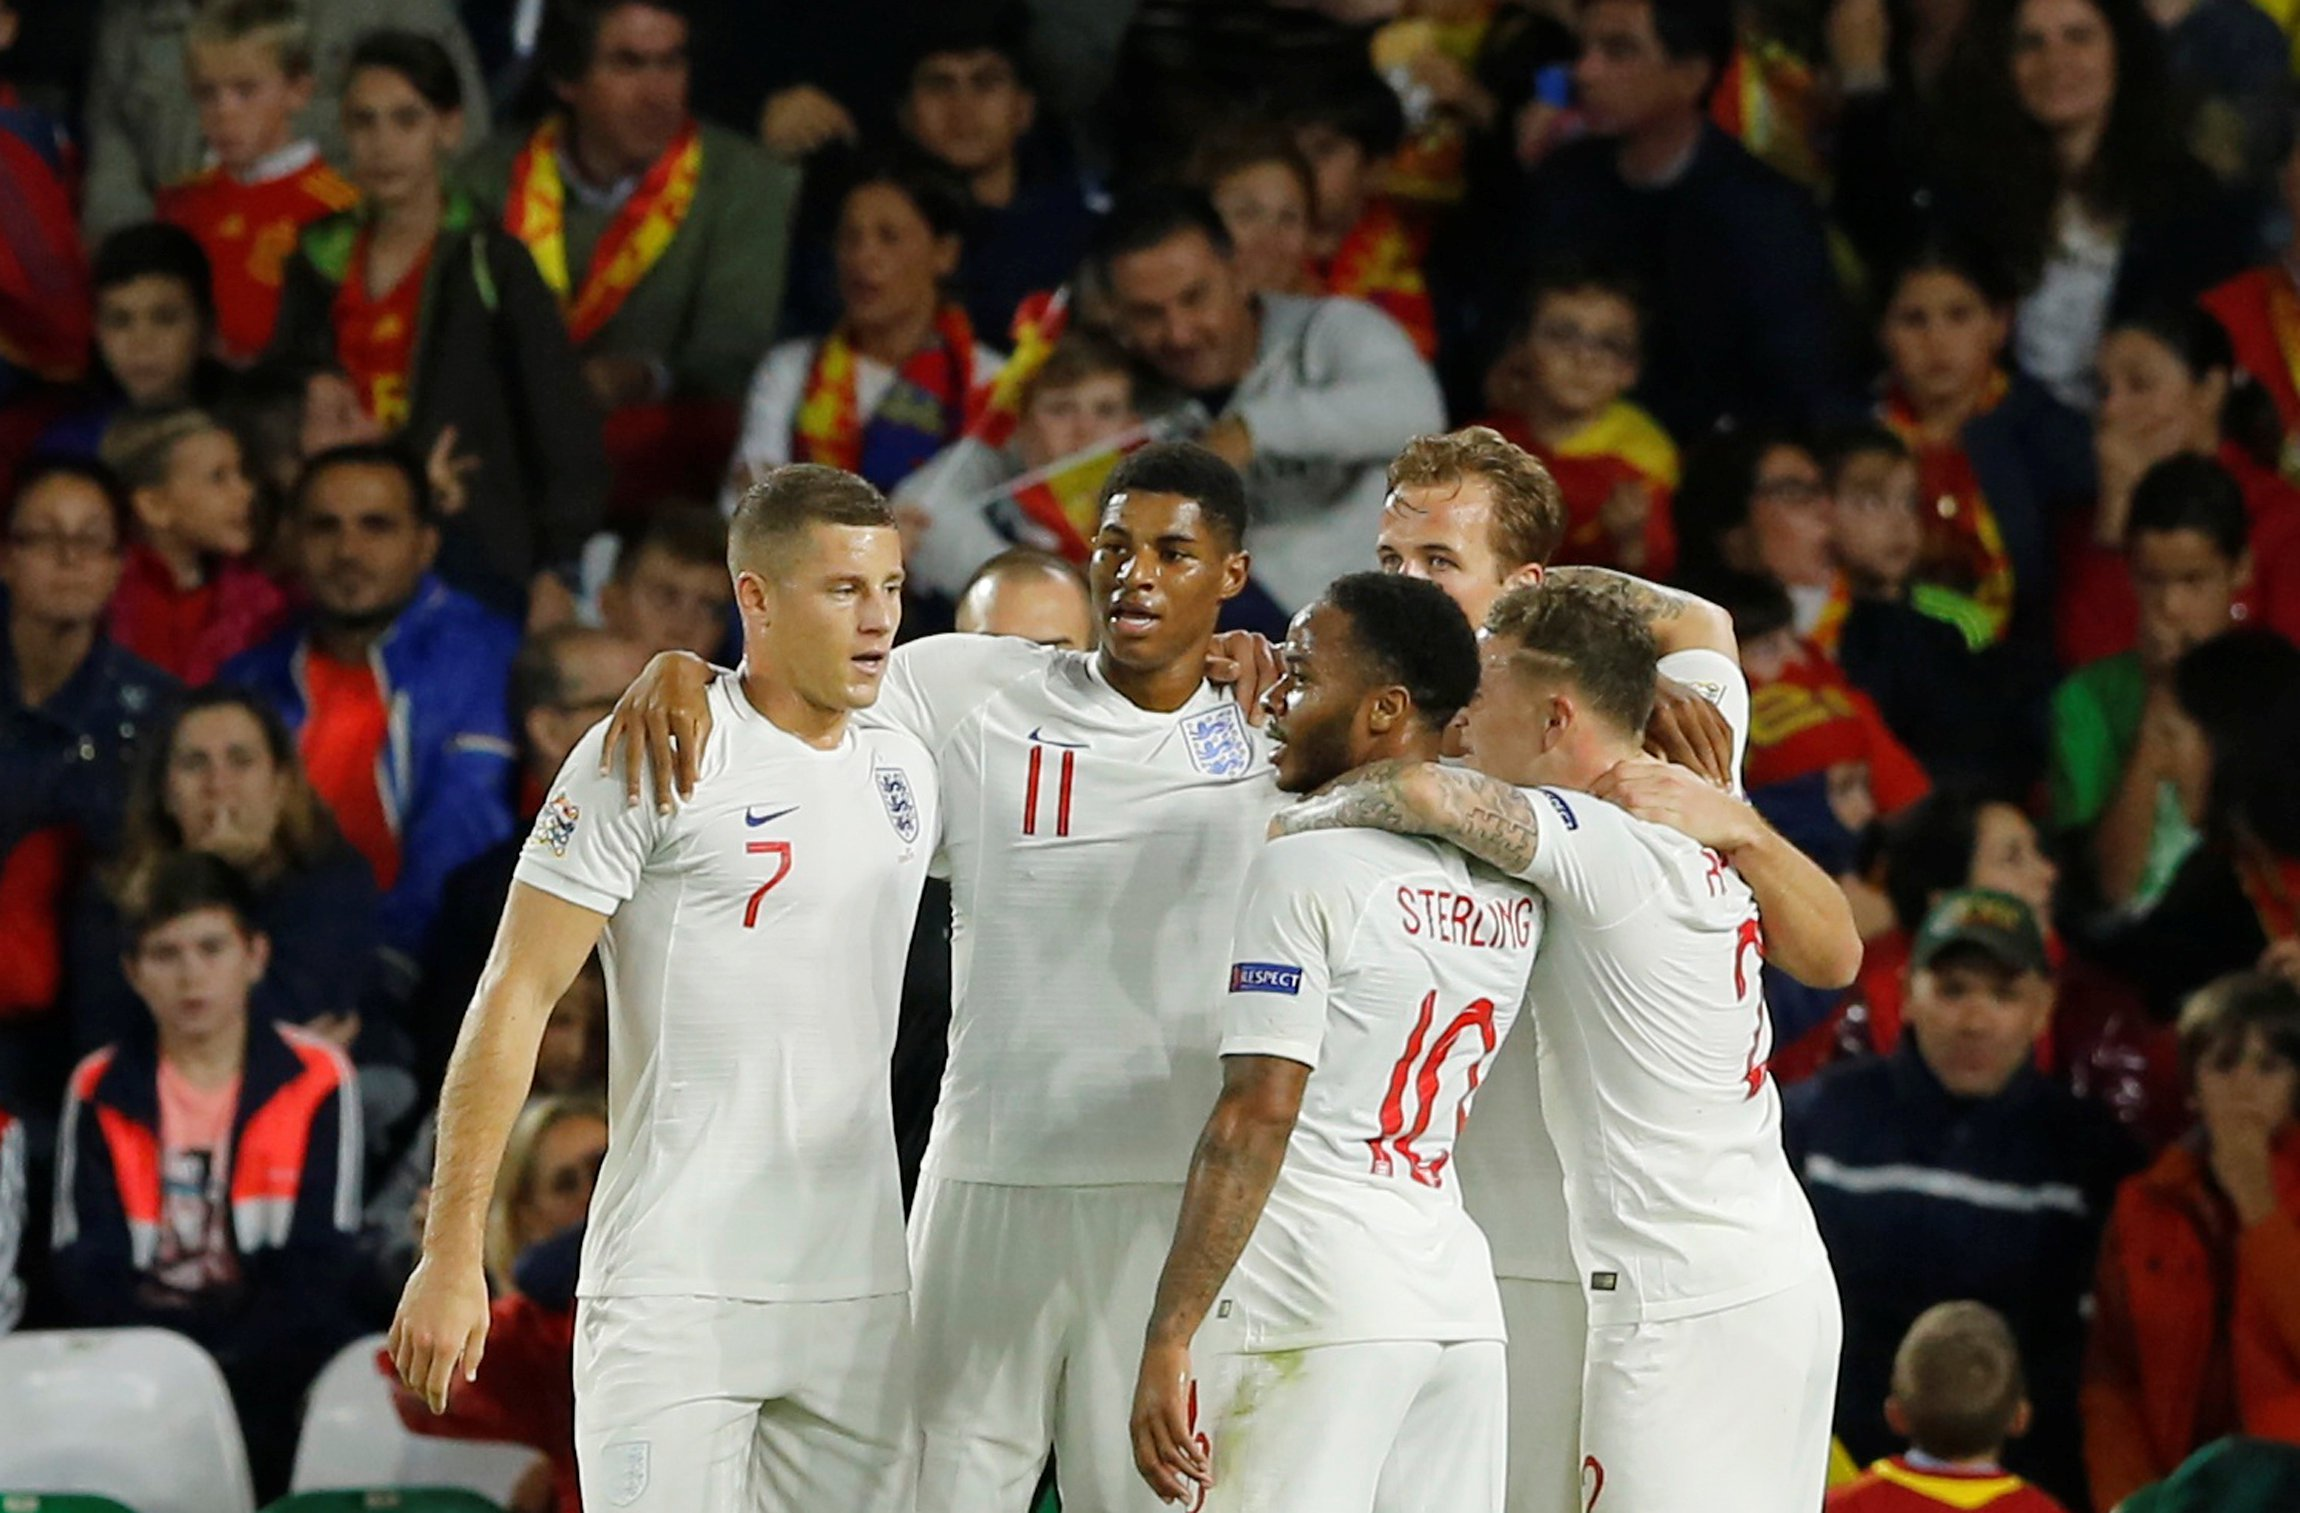 Soccer Football - UEFA Nations League - League A - Group 4 - Spain v England - Estadio Benito Villamarin, Seville, Spain - October 15, 2018 England's Marcus Rashford celebrates with team mates after scoring their second goal REUTERS/Marcelo Del Pozo